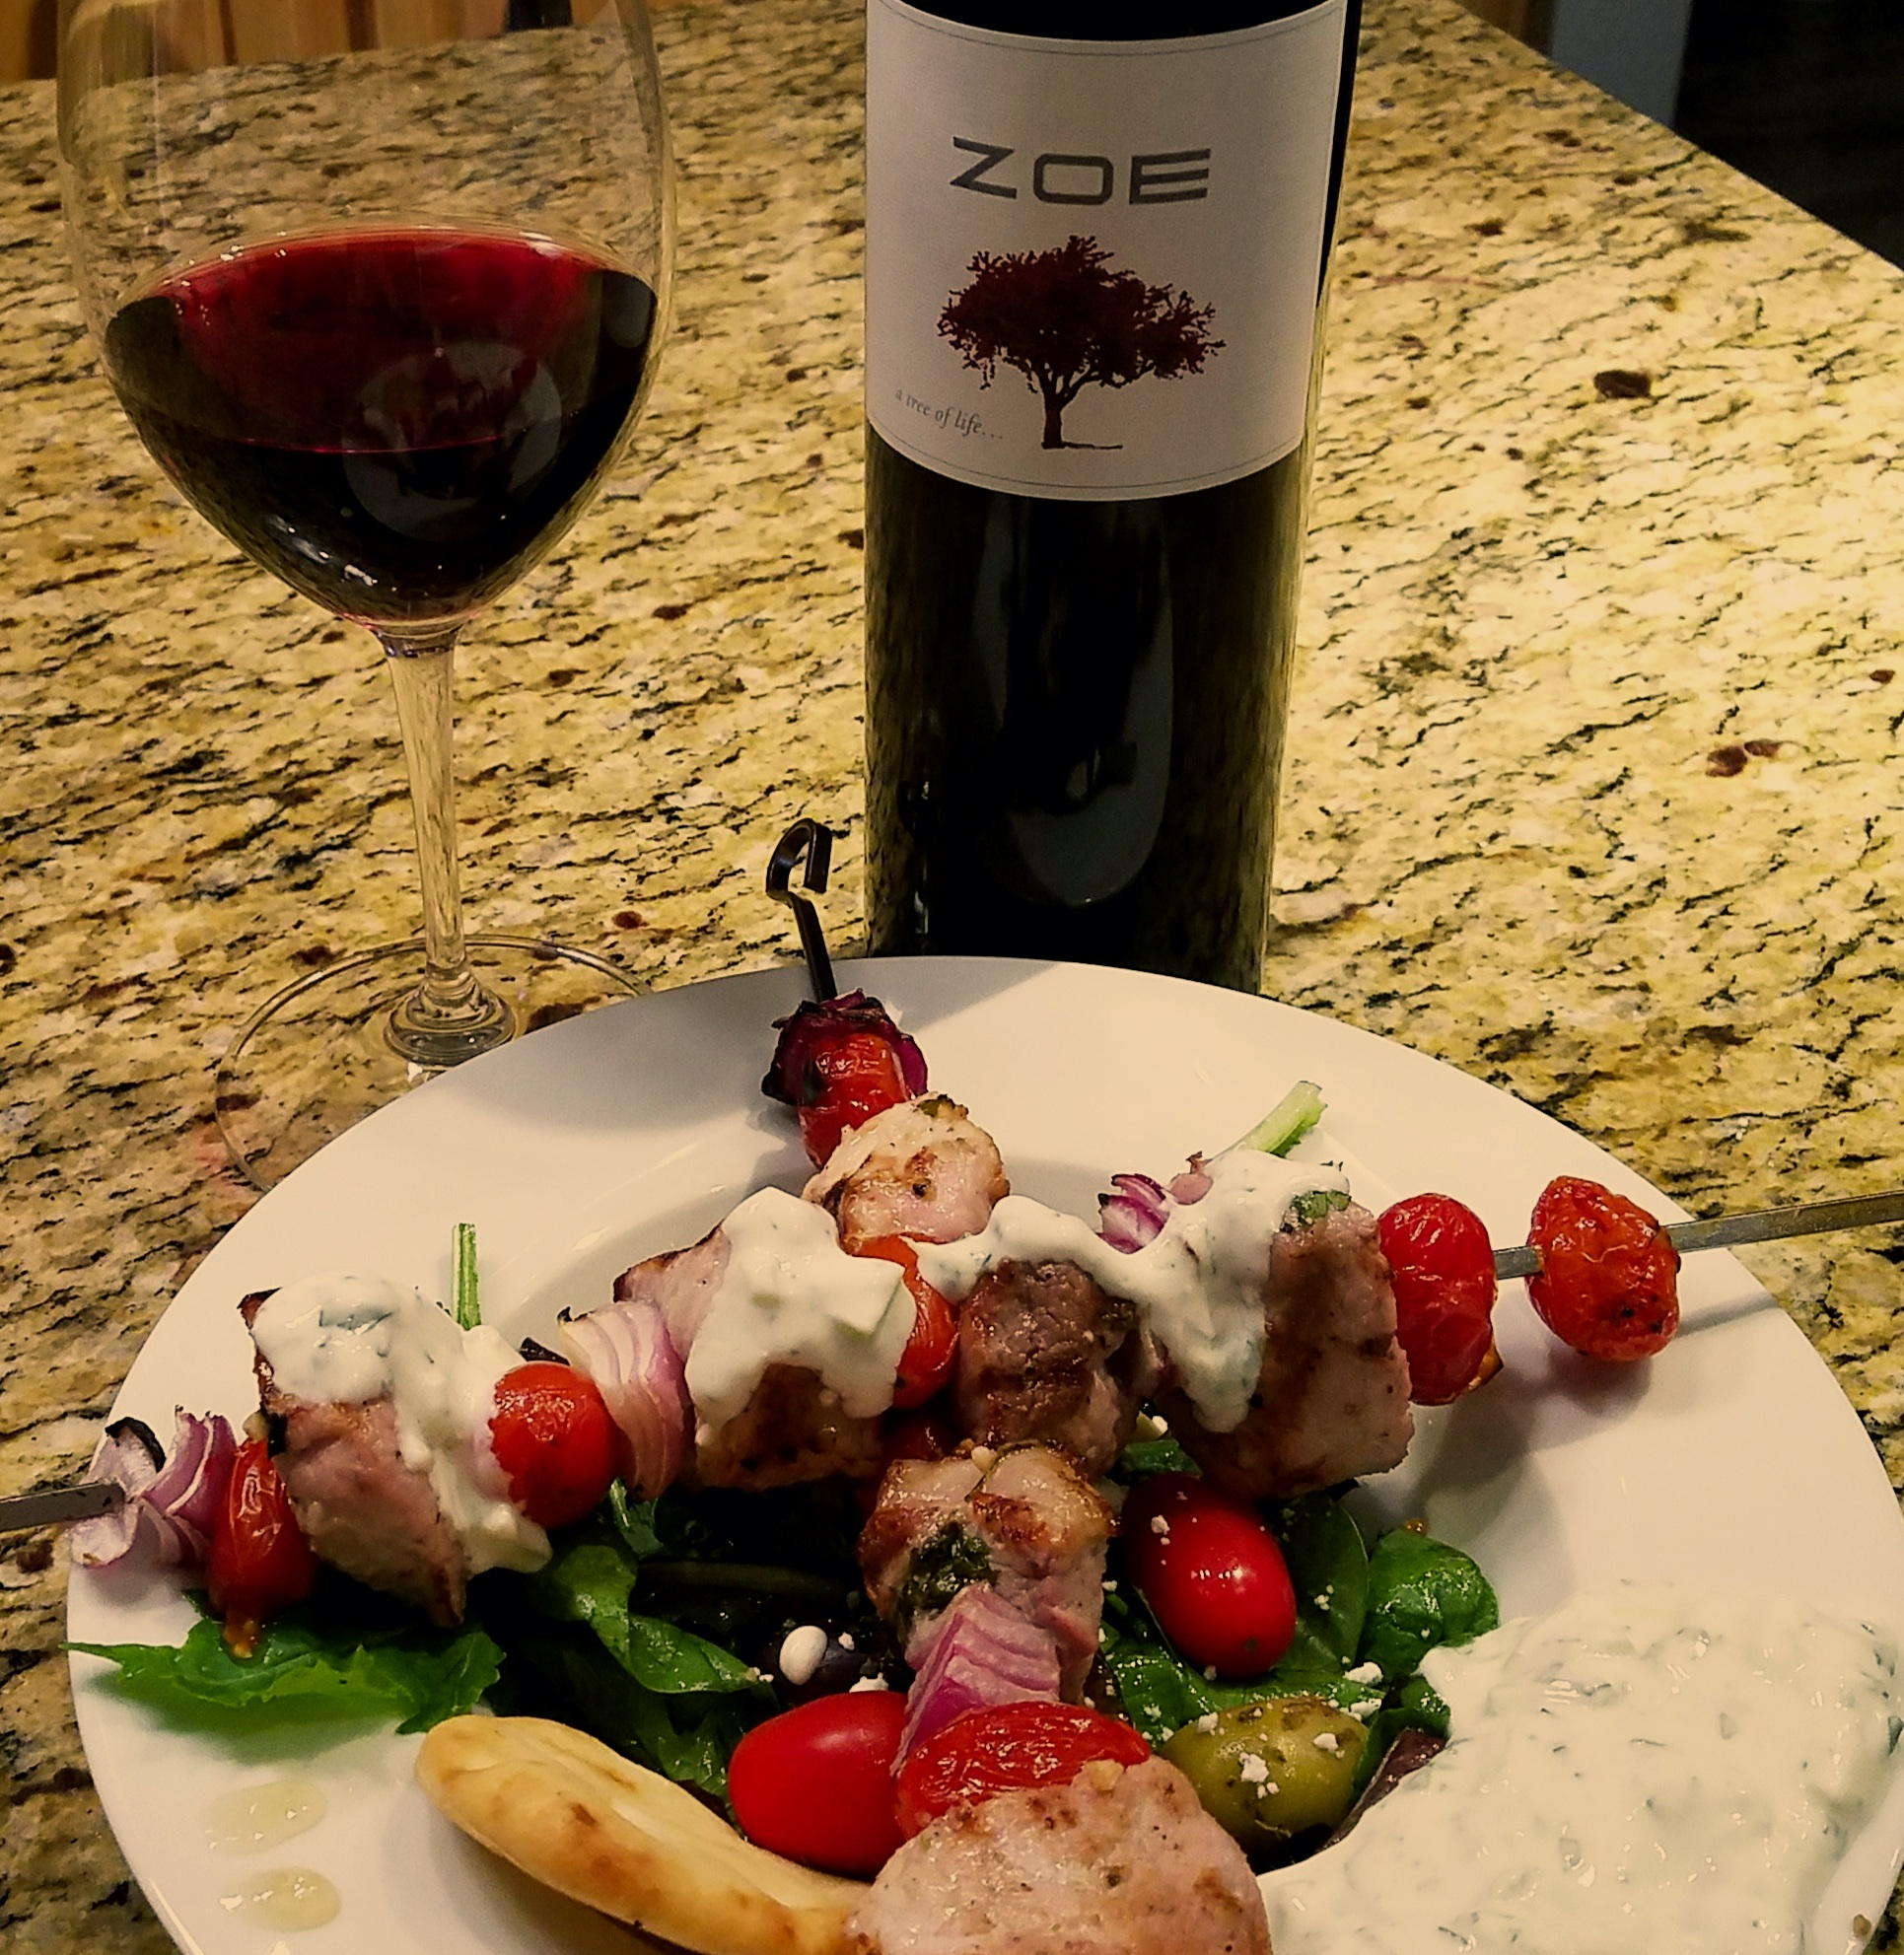 Pork Souvlaki paired with Zoe Red Blend from Greece